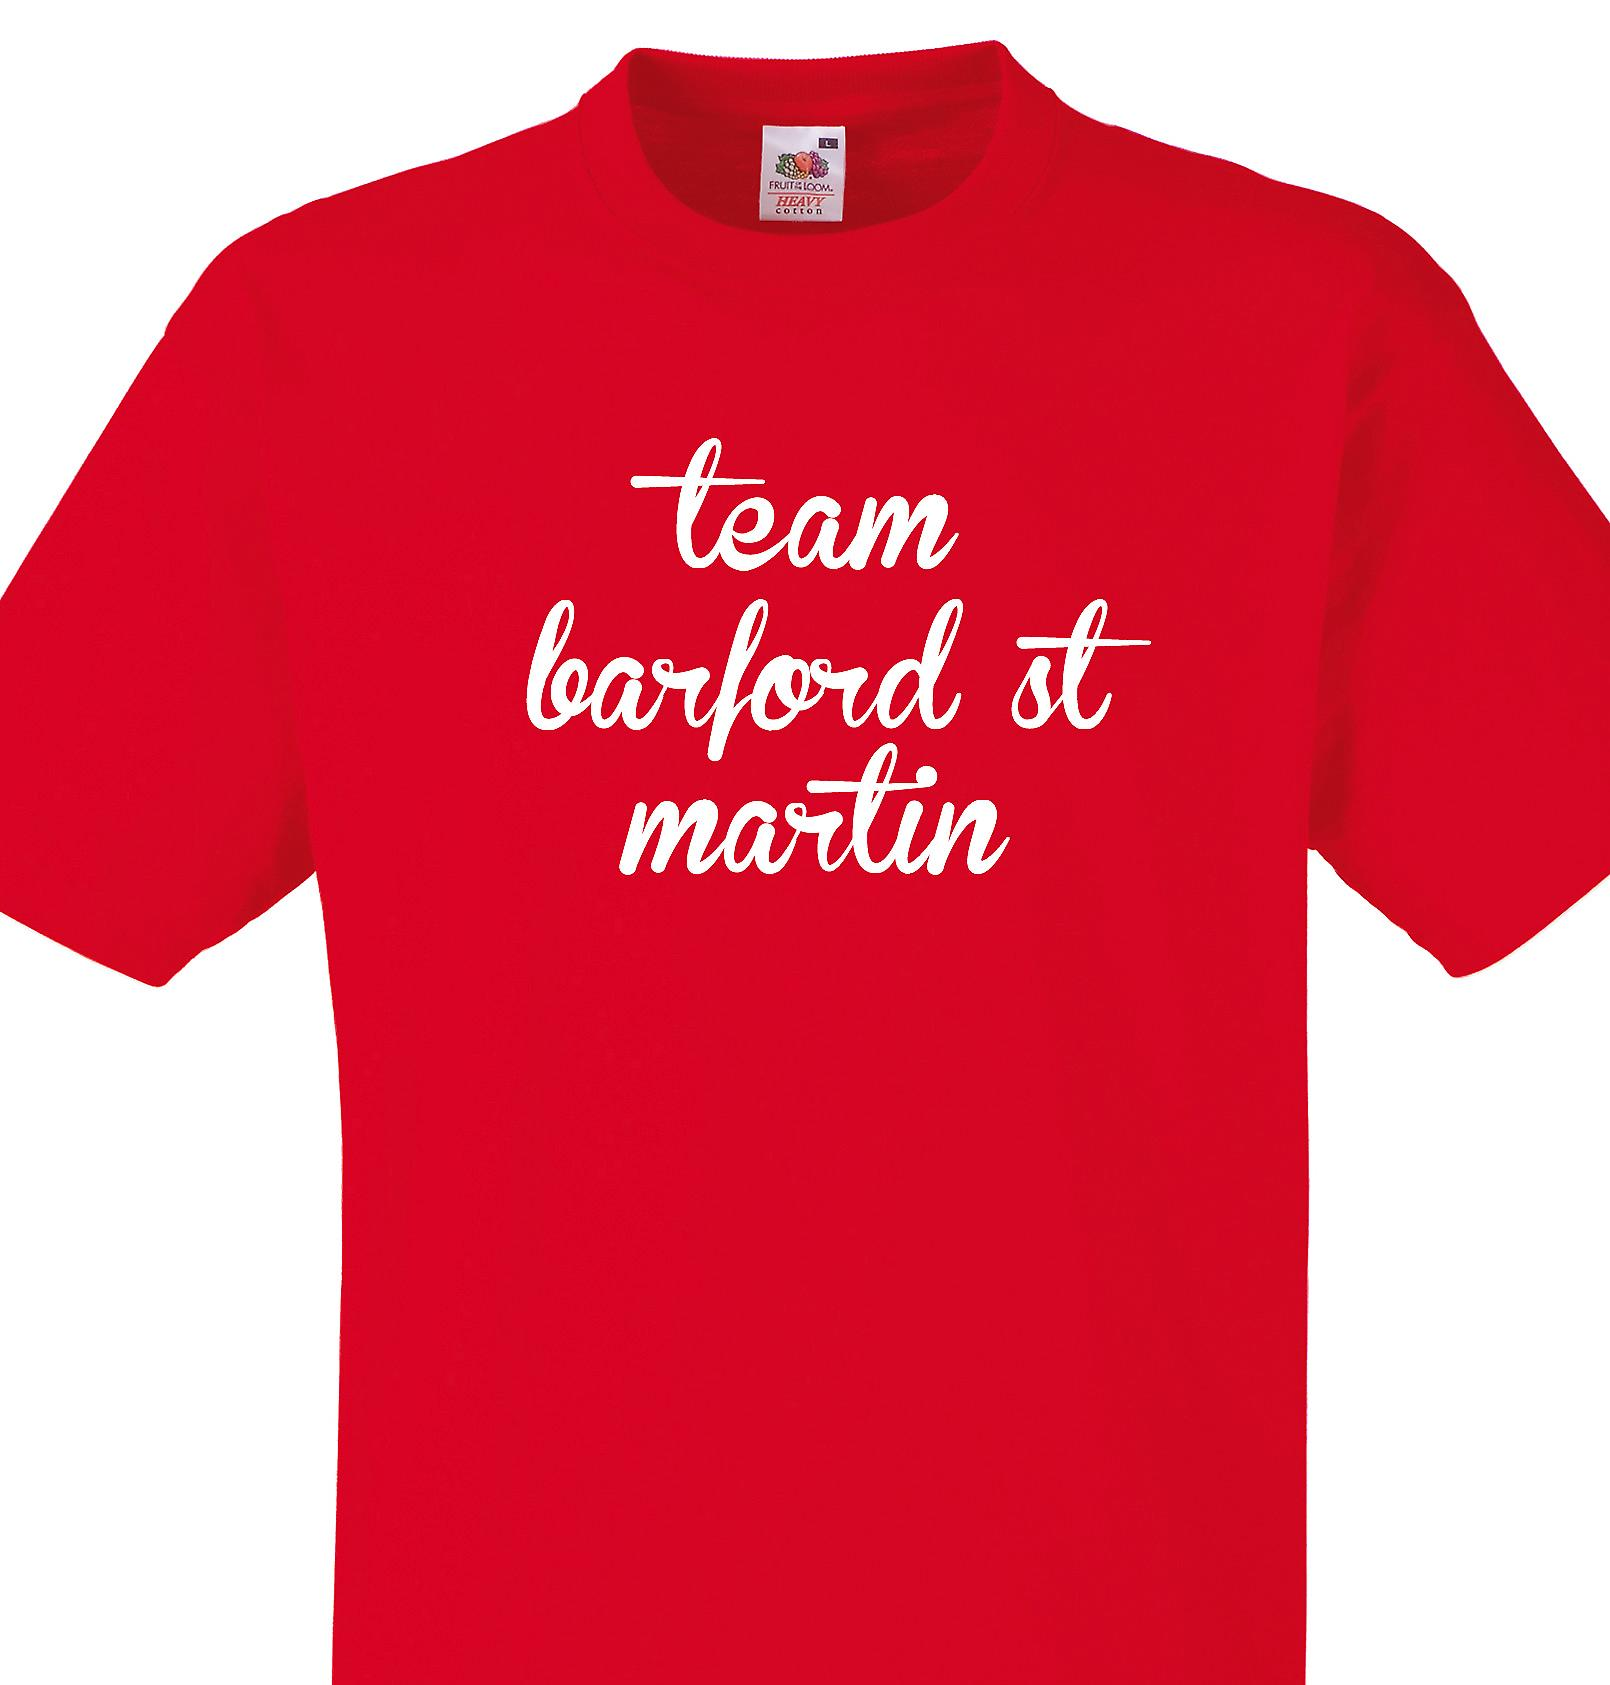 Team Barford st martin Red T shirt